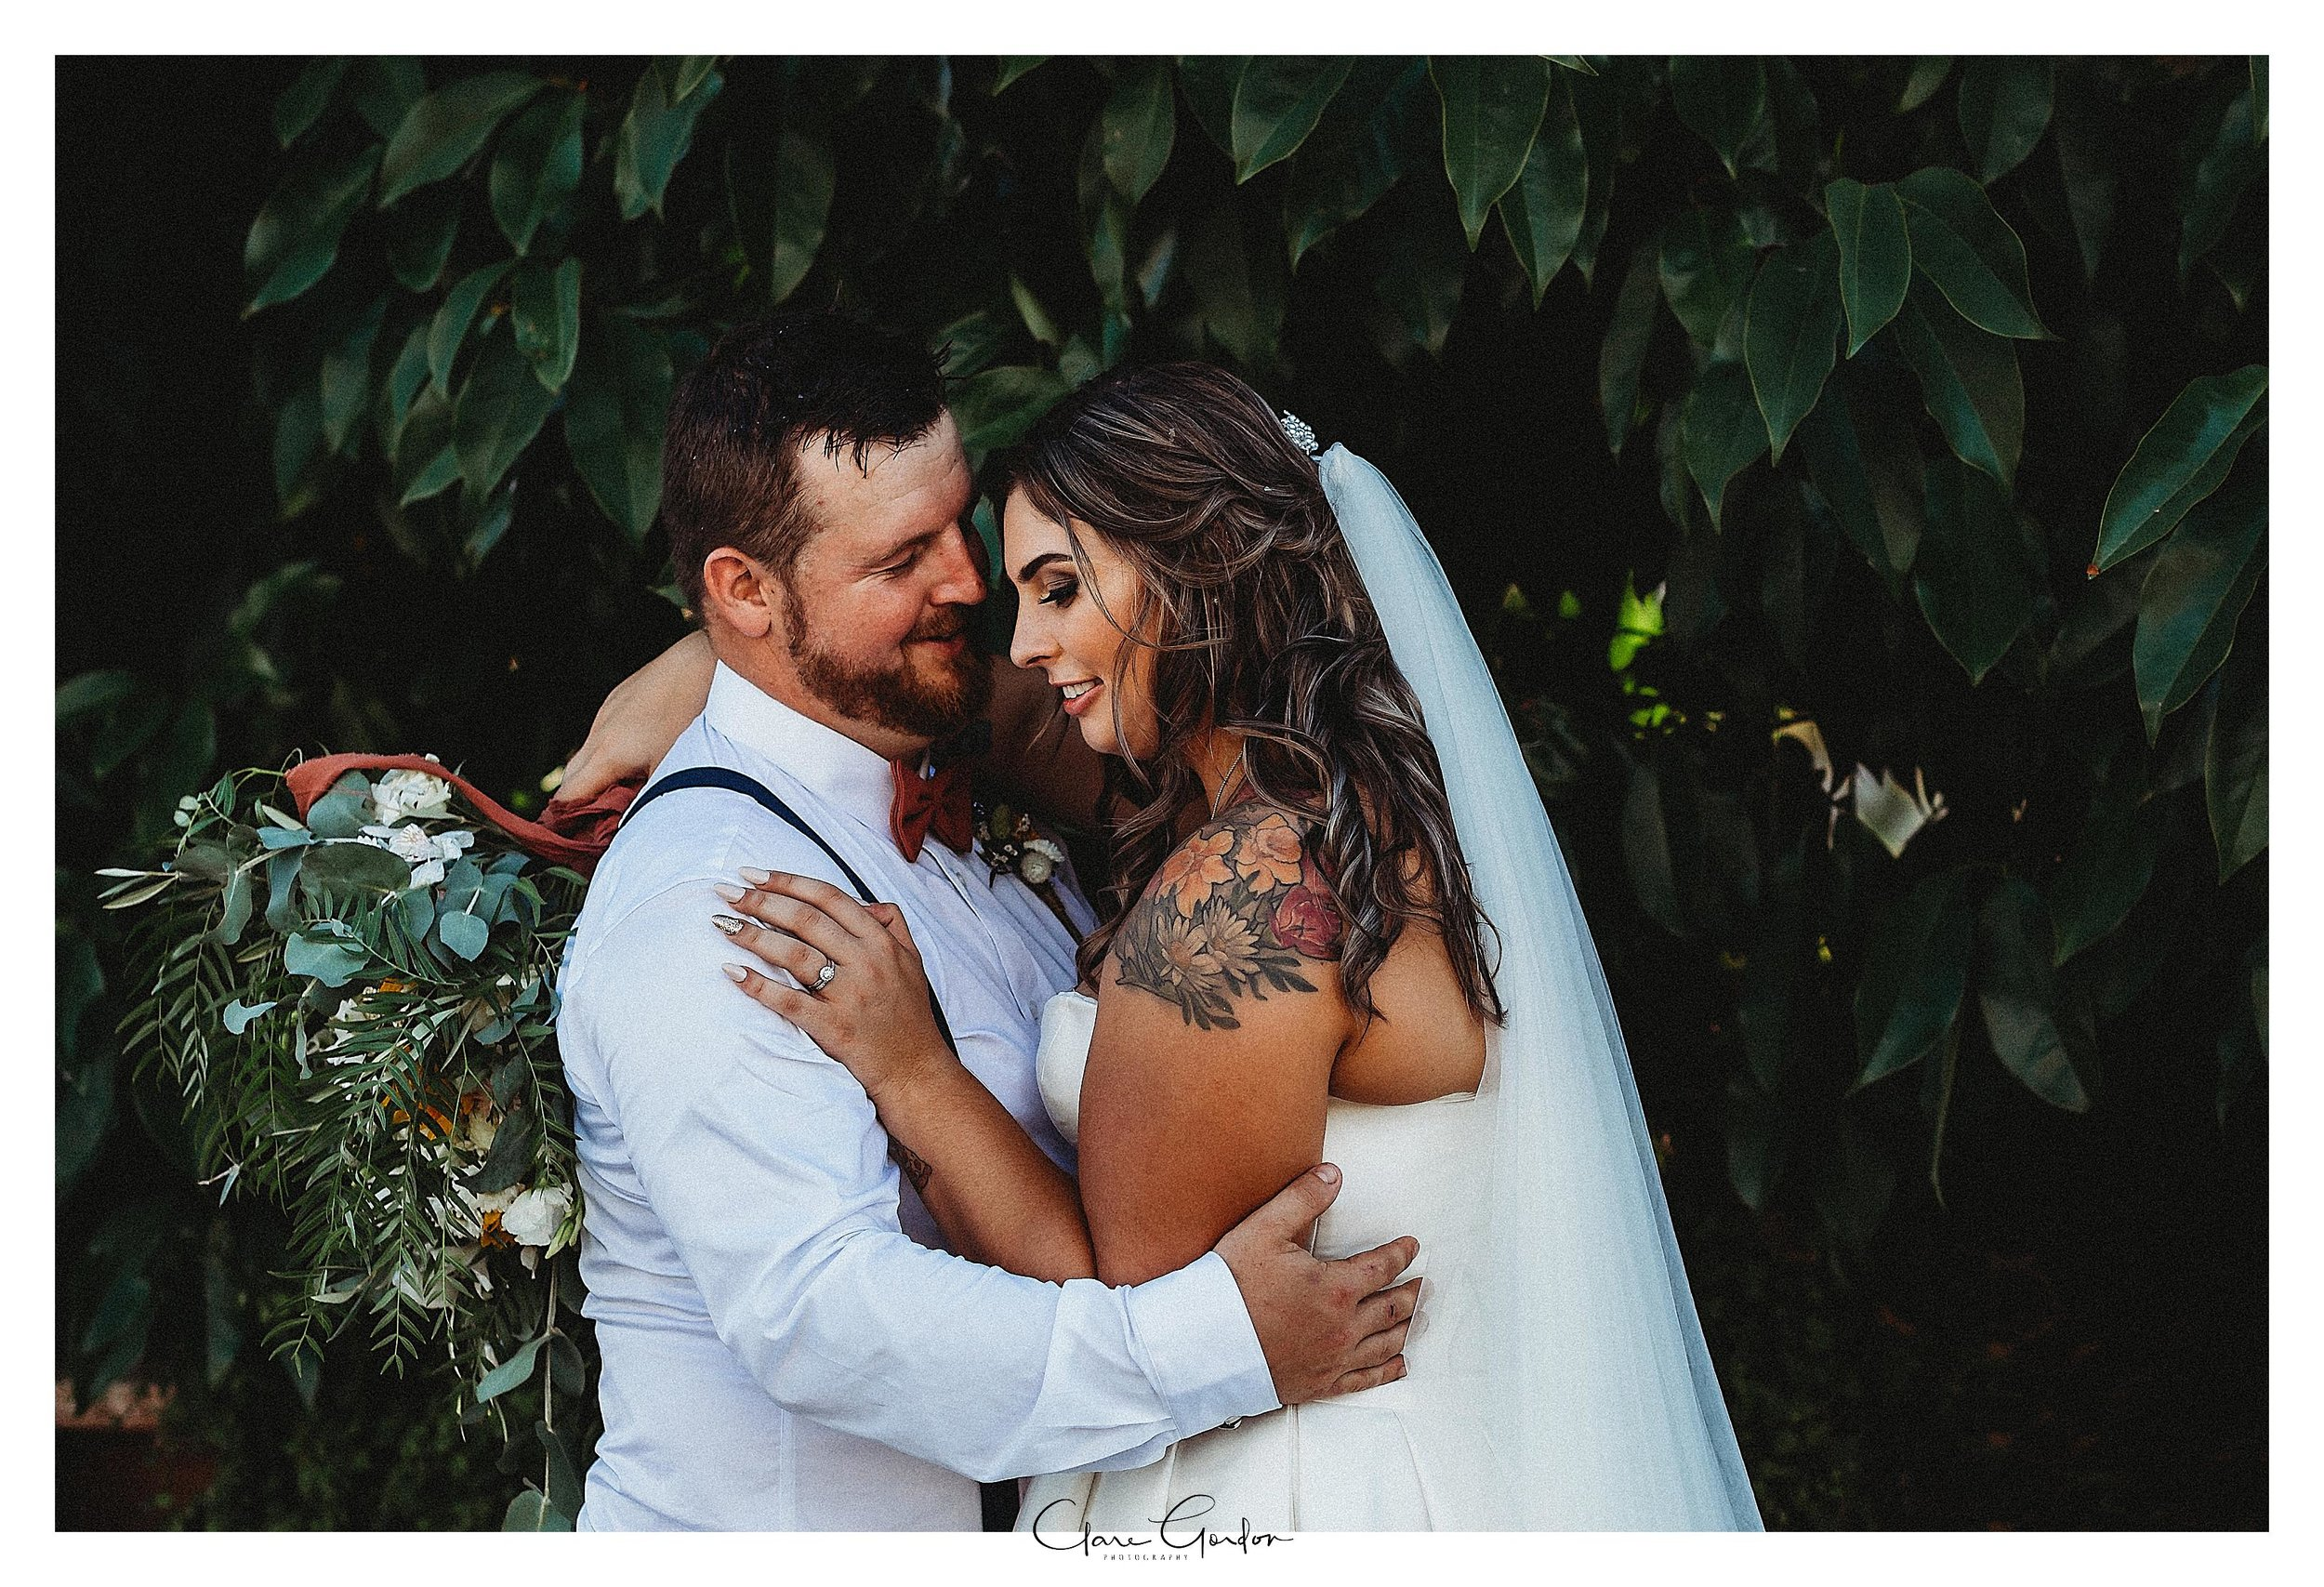 Bride-and-groom-photo-coopers-function-rooms-waikato